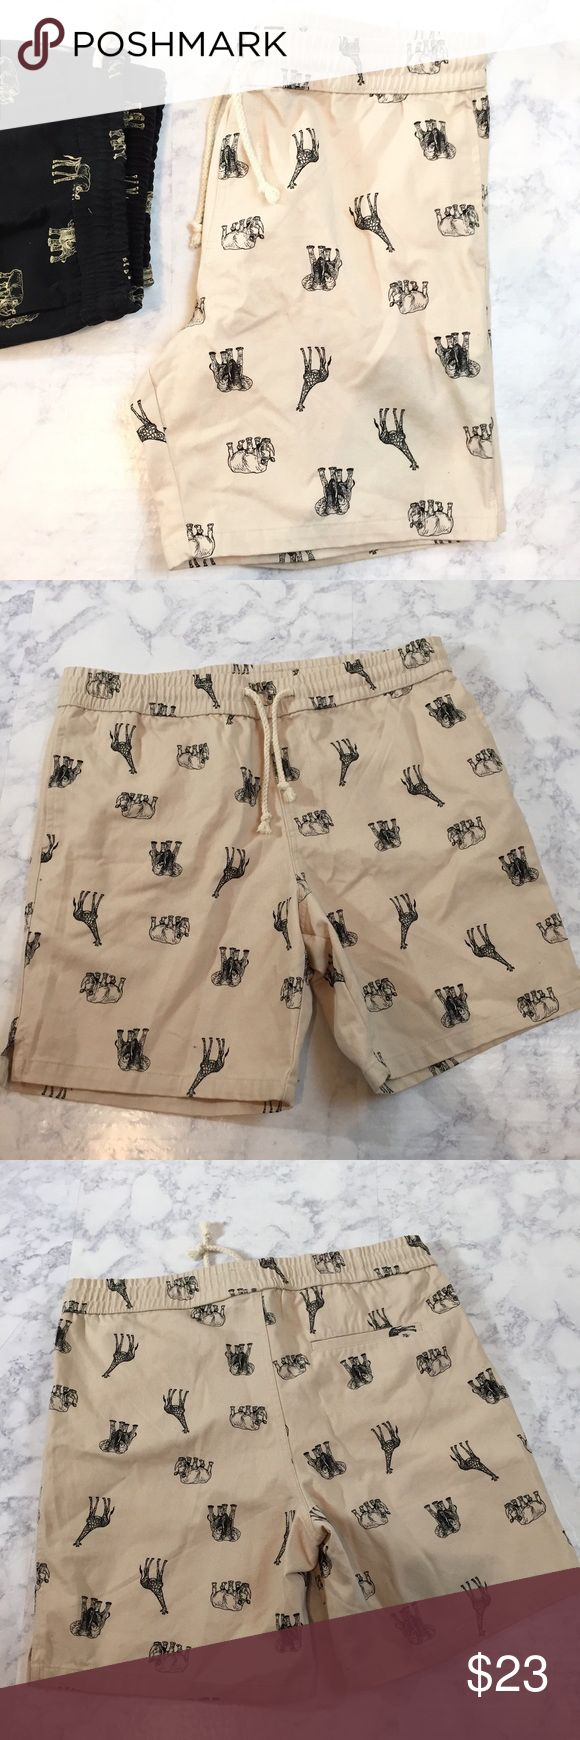 """21Men Khaki chino cargo animal print pull shorts 21 Men Khaki Shorts  Gently used, in great condition Size Large  Length 18""""  Waist 19""""   Laid flat, not stretched or doubled 21men Shorts Cargo"""